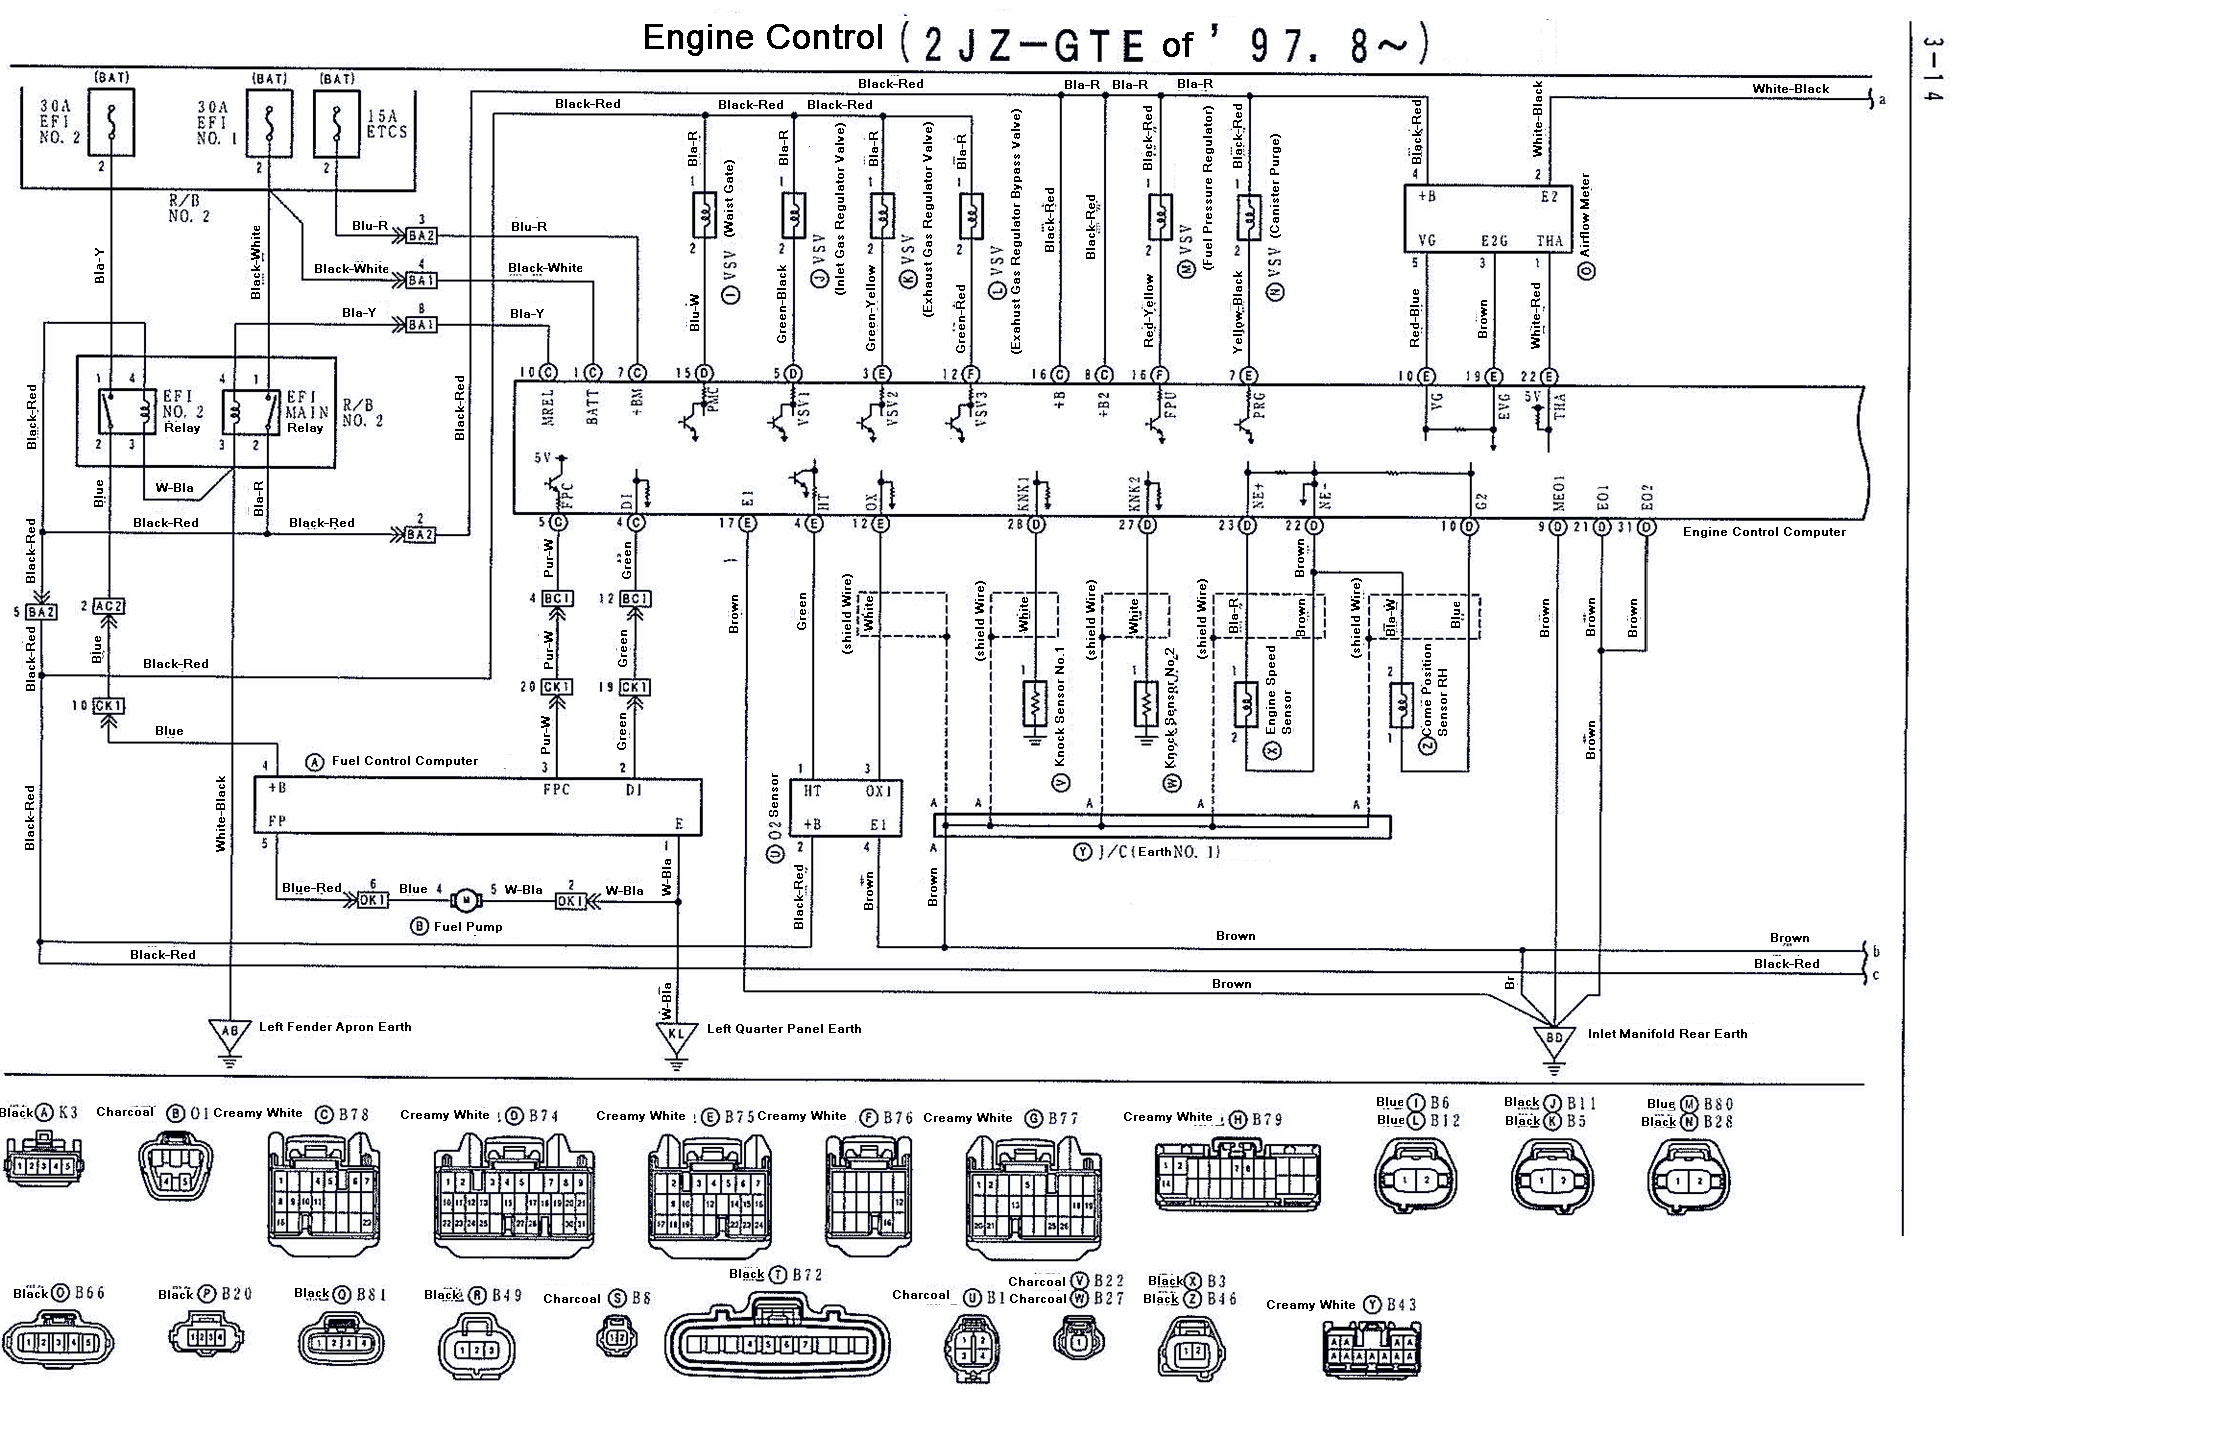 2jz Ge Vvti Wiring Diagram: diagrams Archives - Page 2 of 2 - 2JZGARAGErh:2jzgarage.com,Design